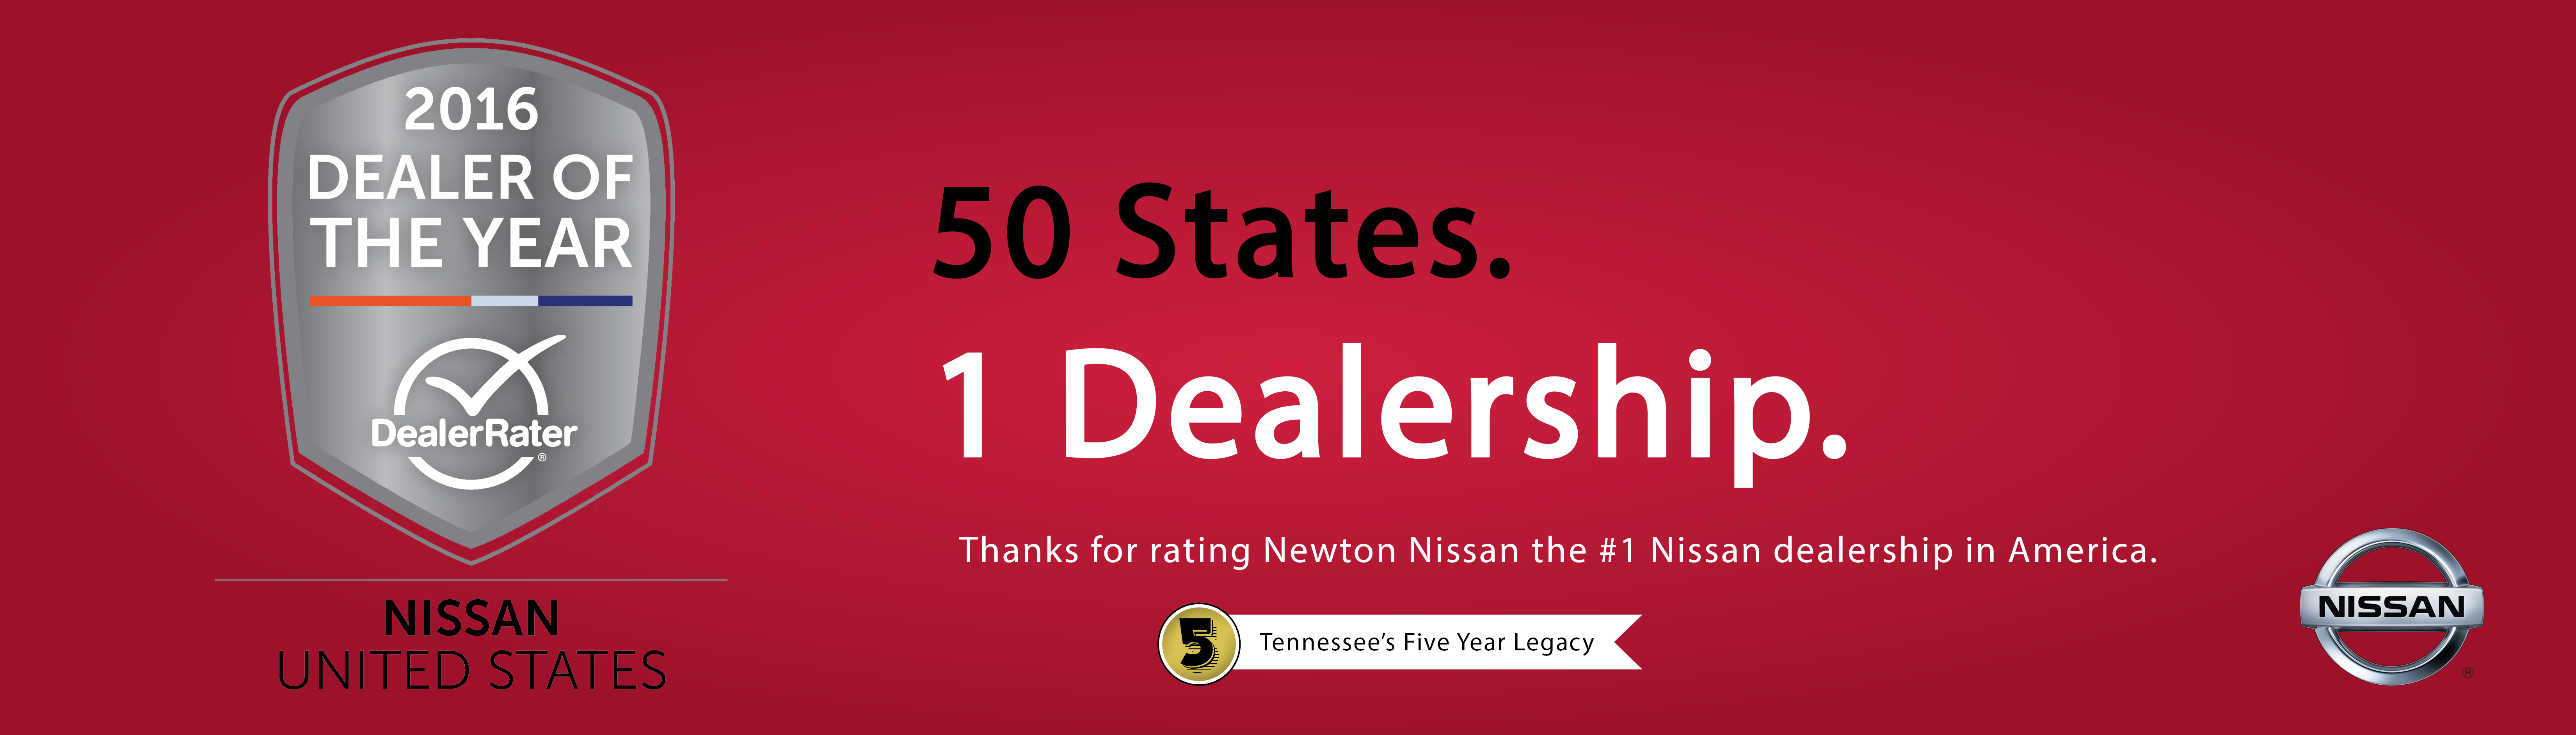 #1 Nissan Dealership in America